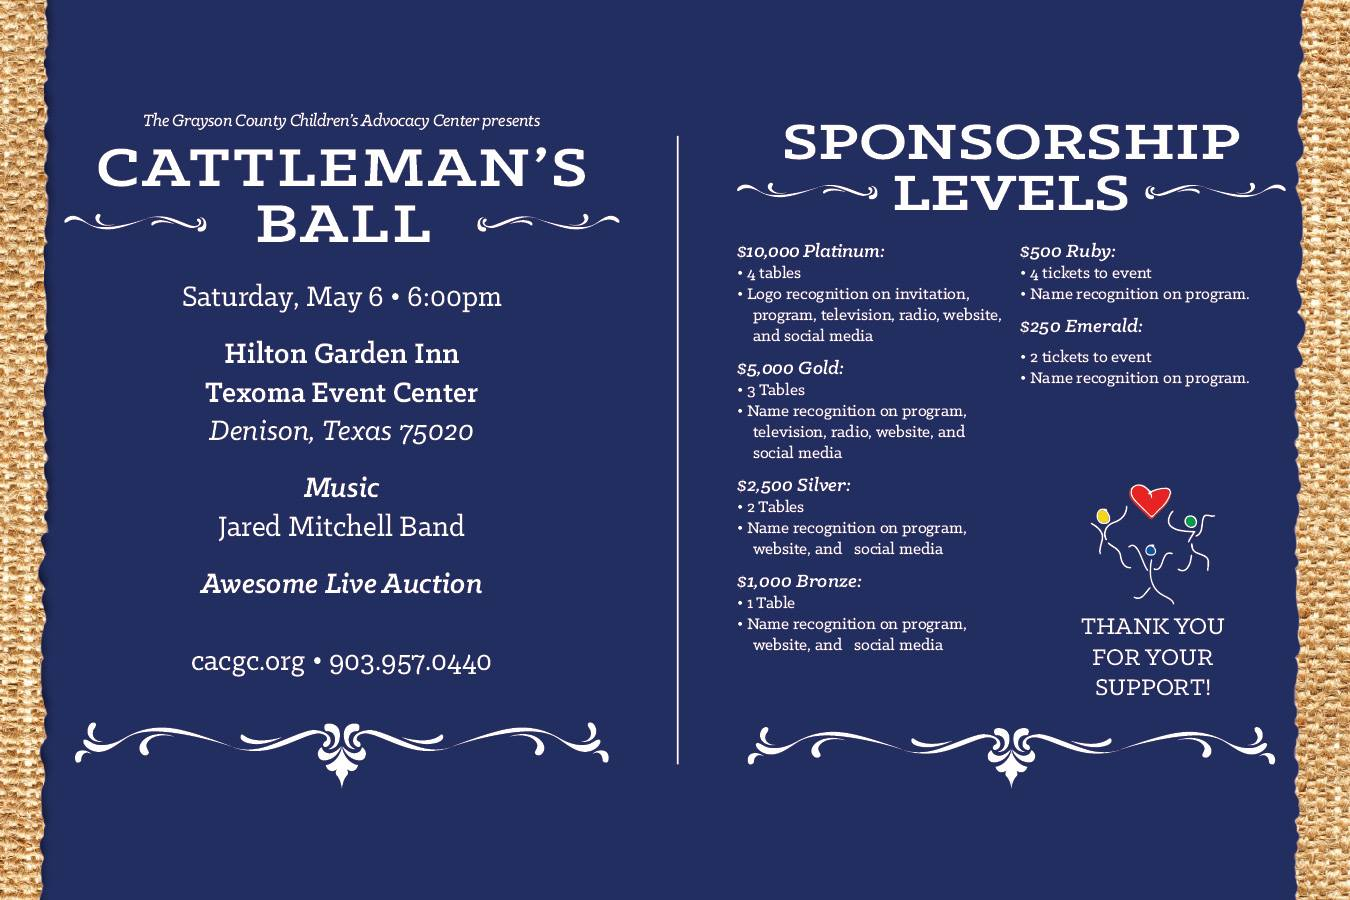 CattlemansBall - The Children's Advocacy Center Of Grayson County - Gold Star Finance Of Texas